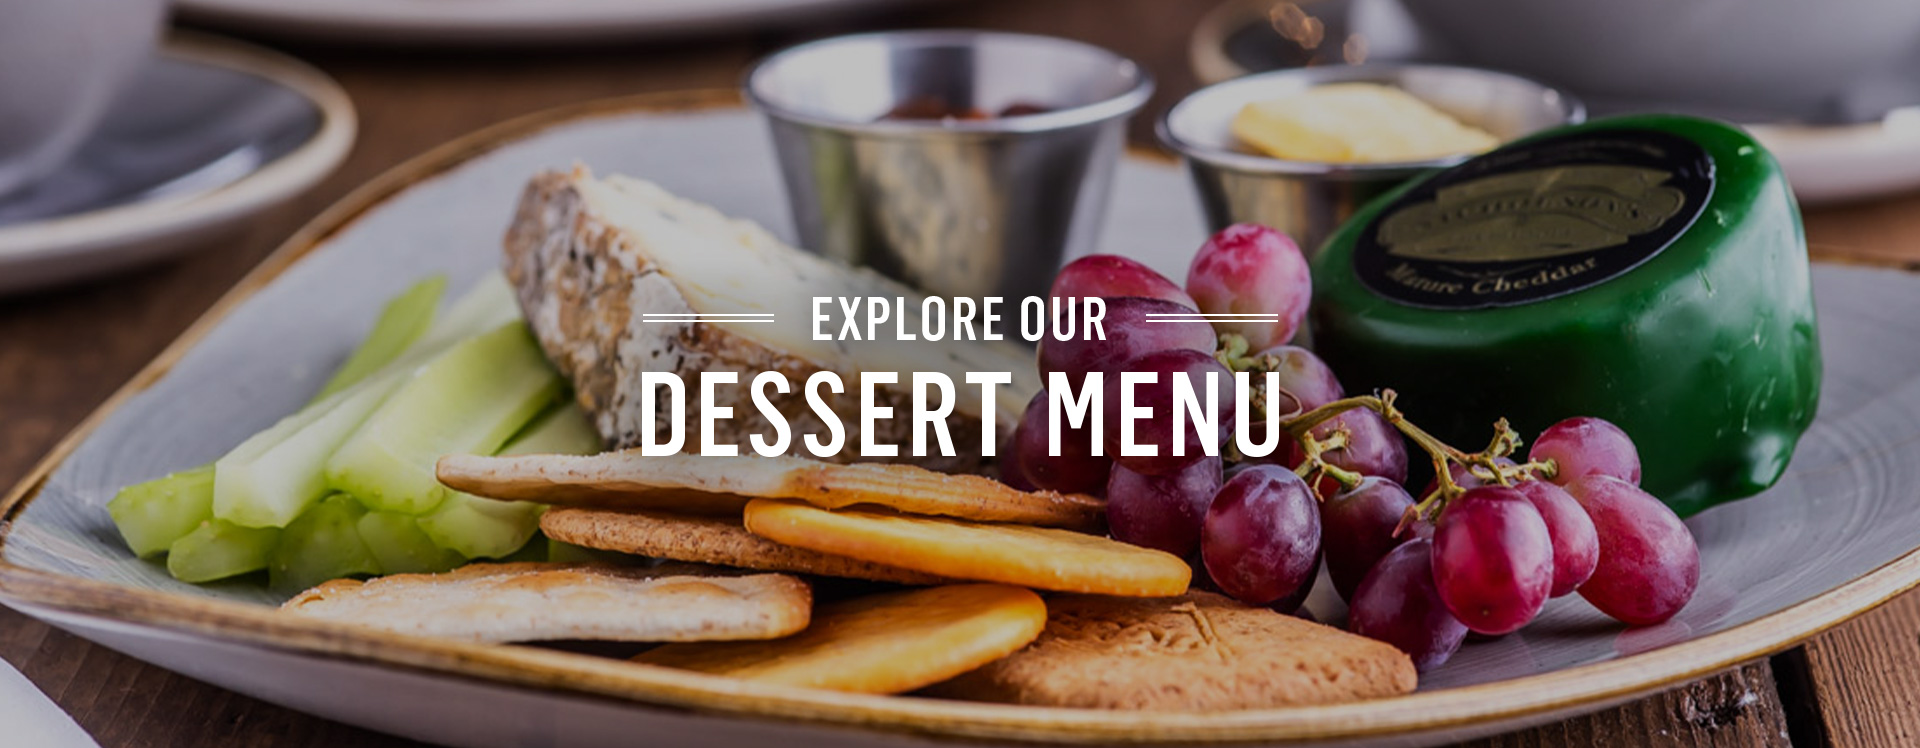 Dessert menu at Williamson's Tavern - Book a table